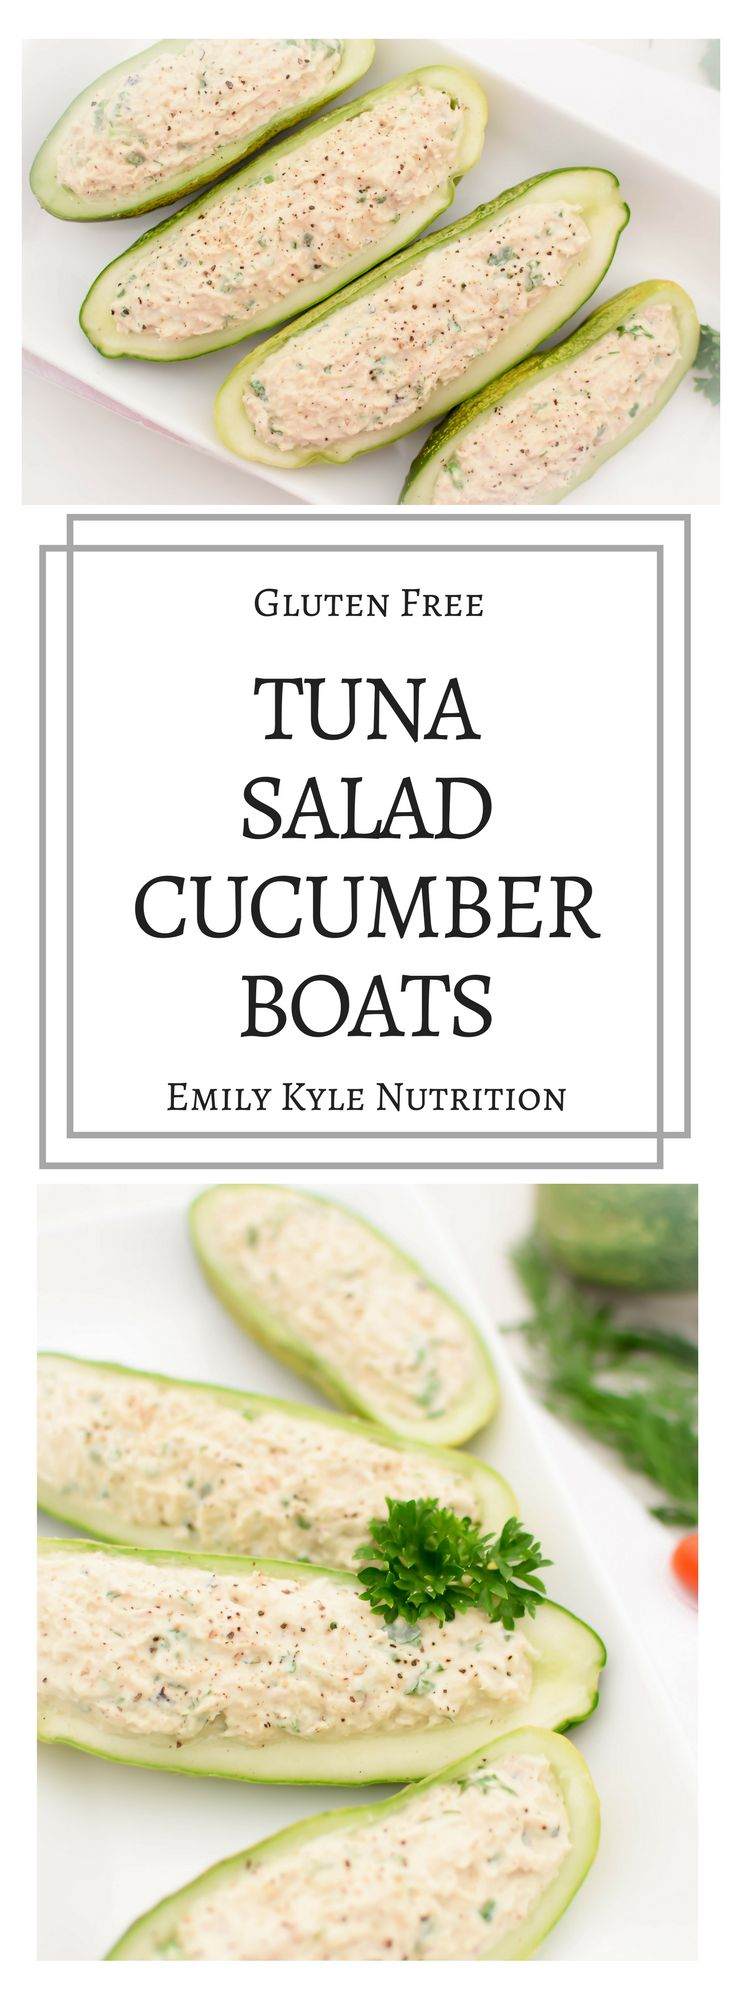 Enjoy a light and refreshing Tuna Salad Cucumber Boat while cutting down on calories and carbohydrates and savoring fresh, homegrown produce!